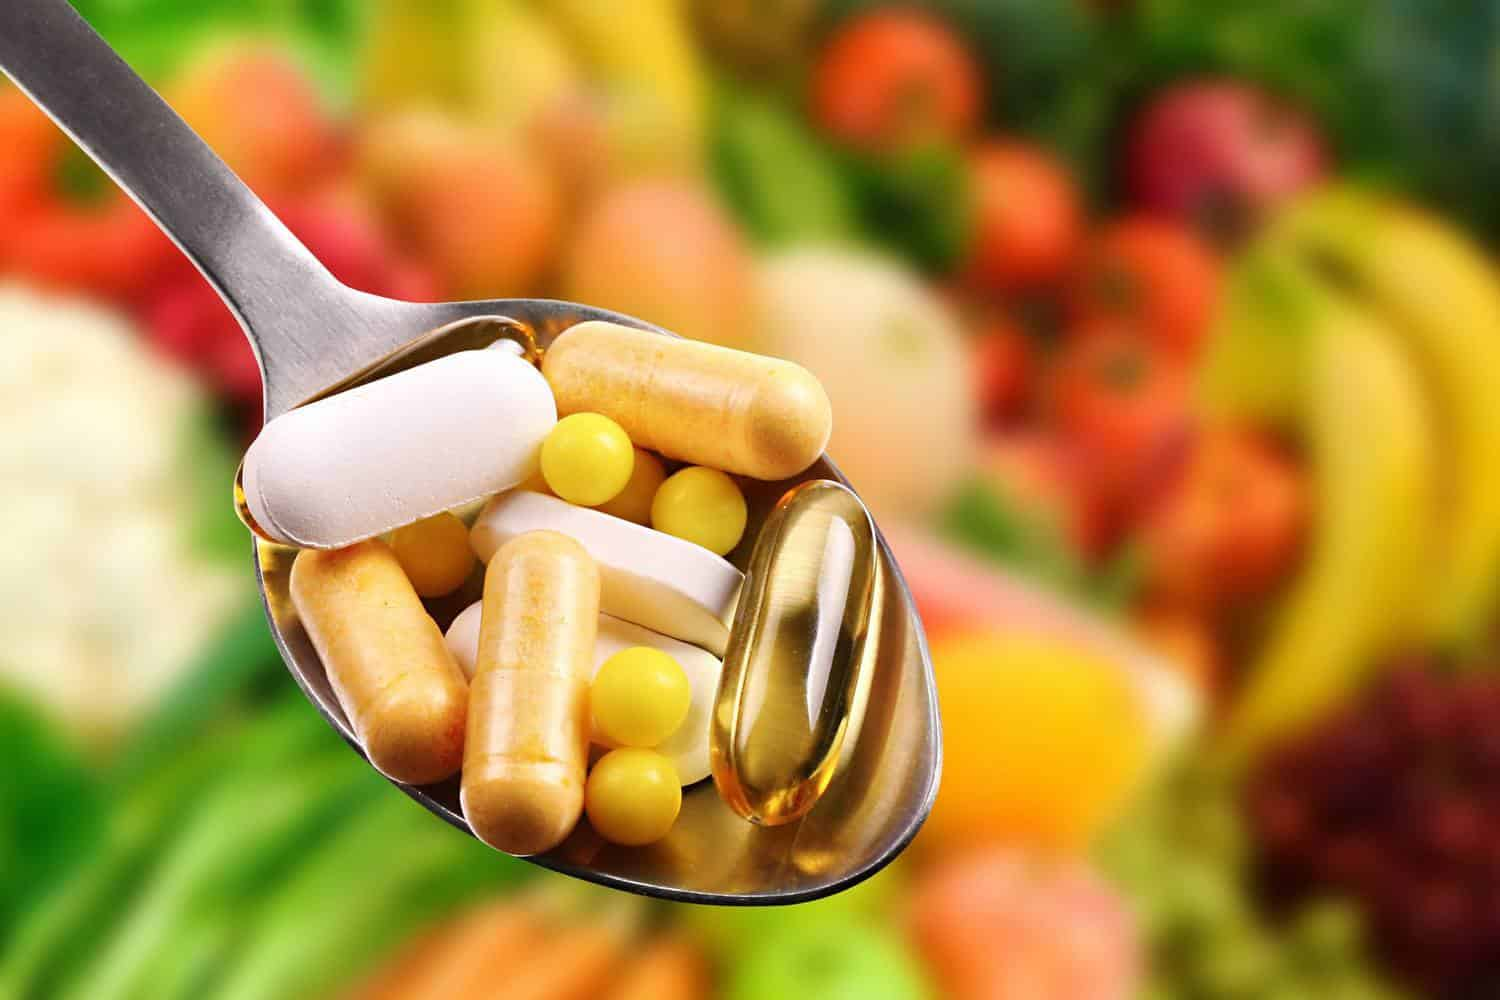 A spoonful of vitamin capsules.